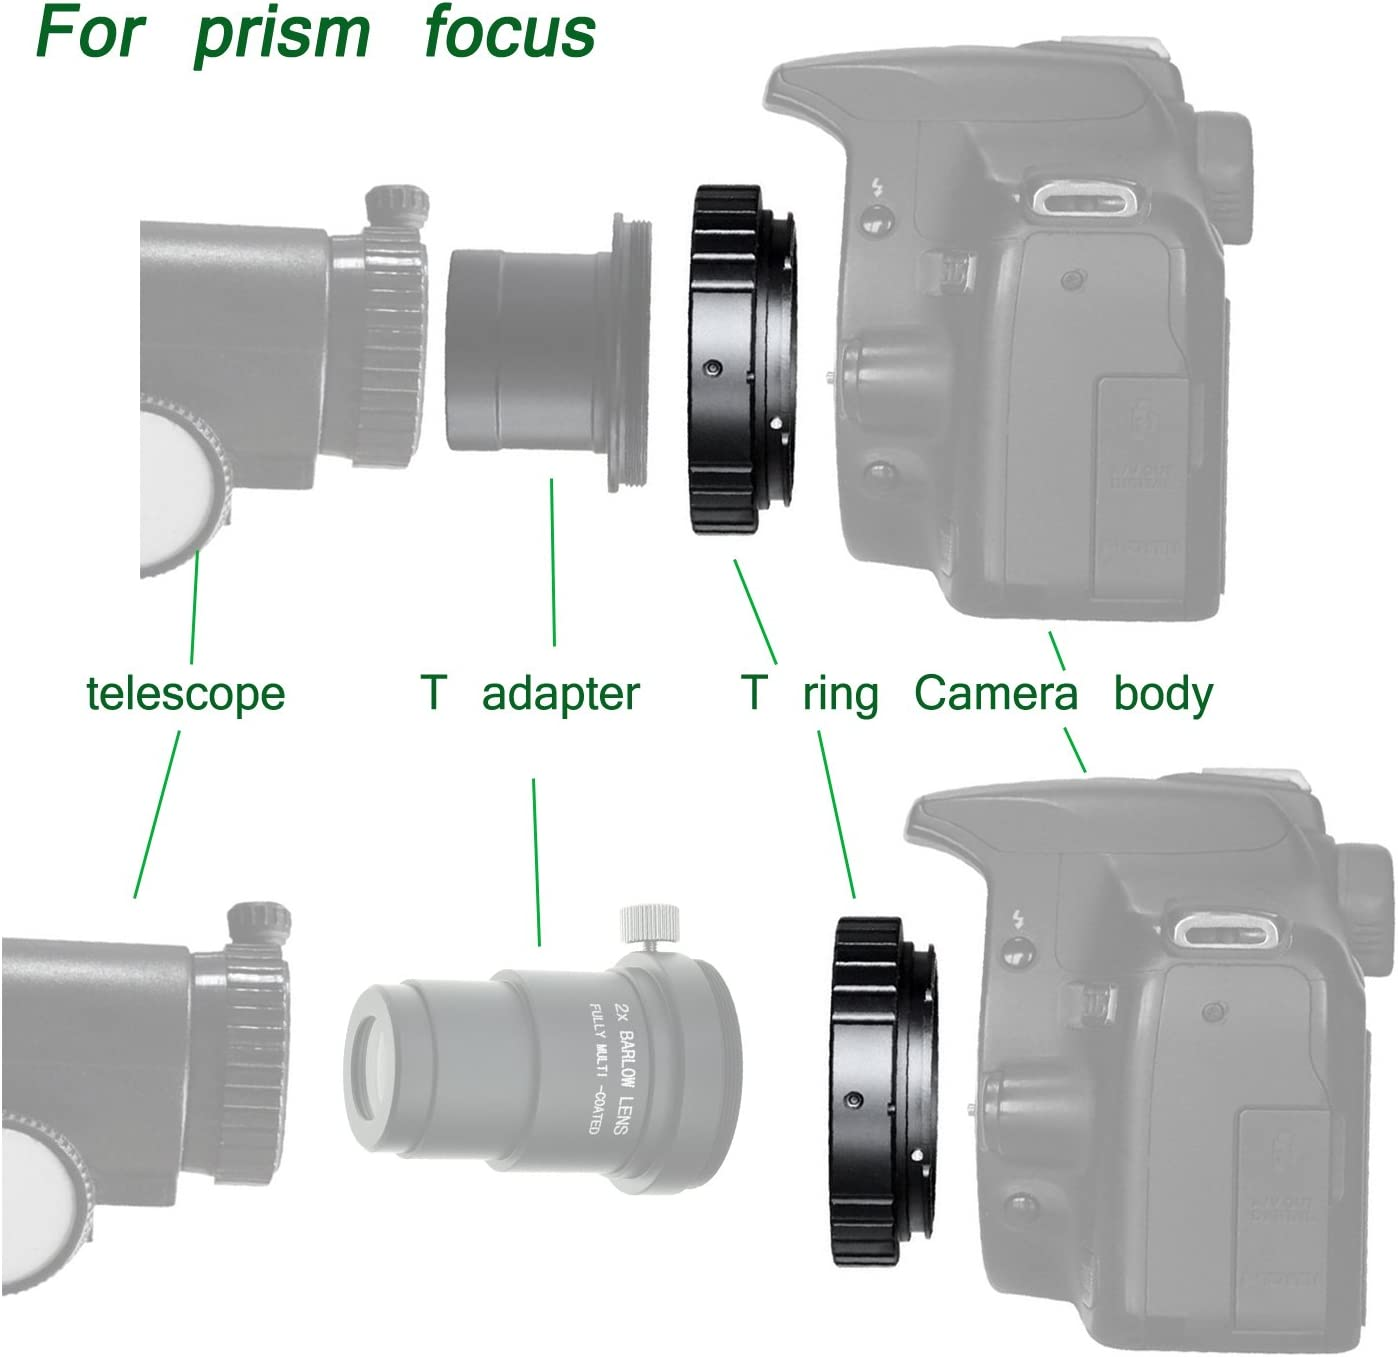 Gosky Metal 1.25 Telescope Camera T-Adapter and Sony Alpha T2 T-Ring Adapter for Sony Alpha DSLR SLR Cameras